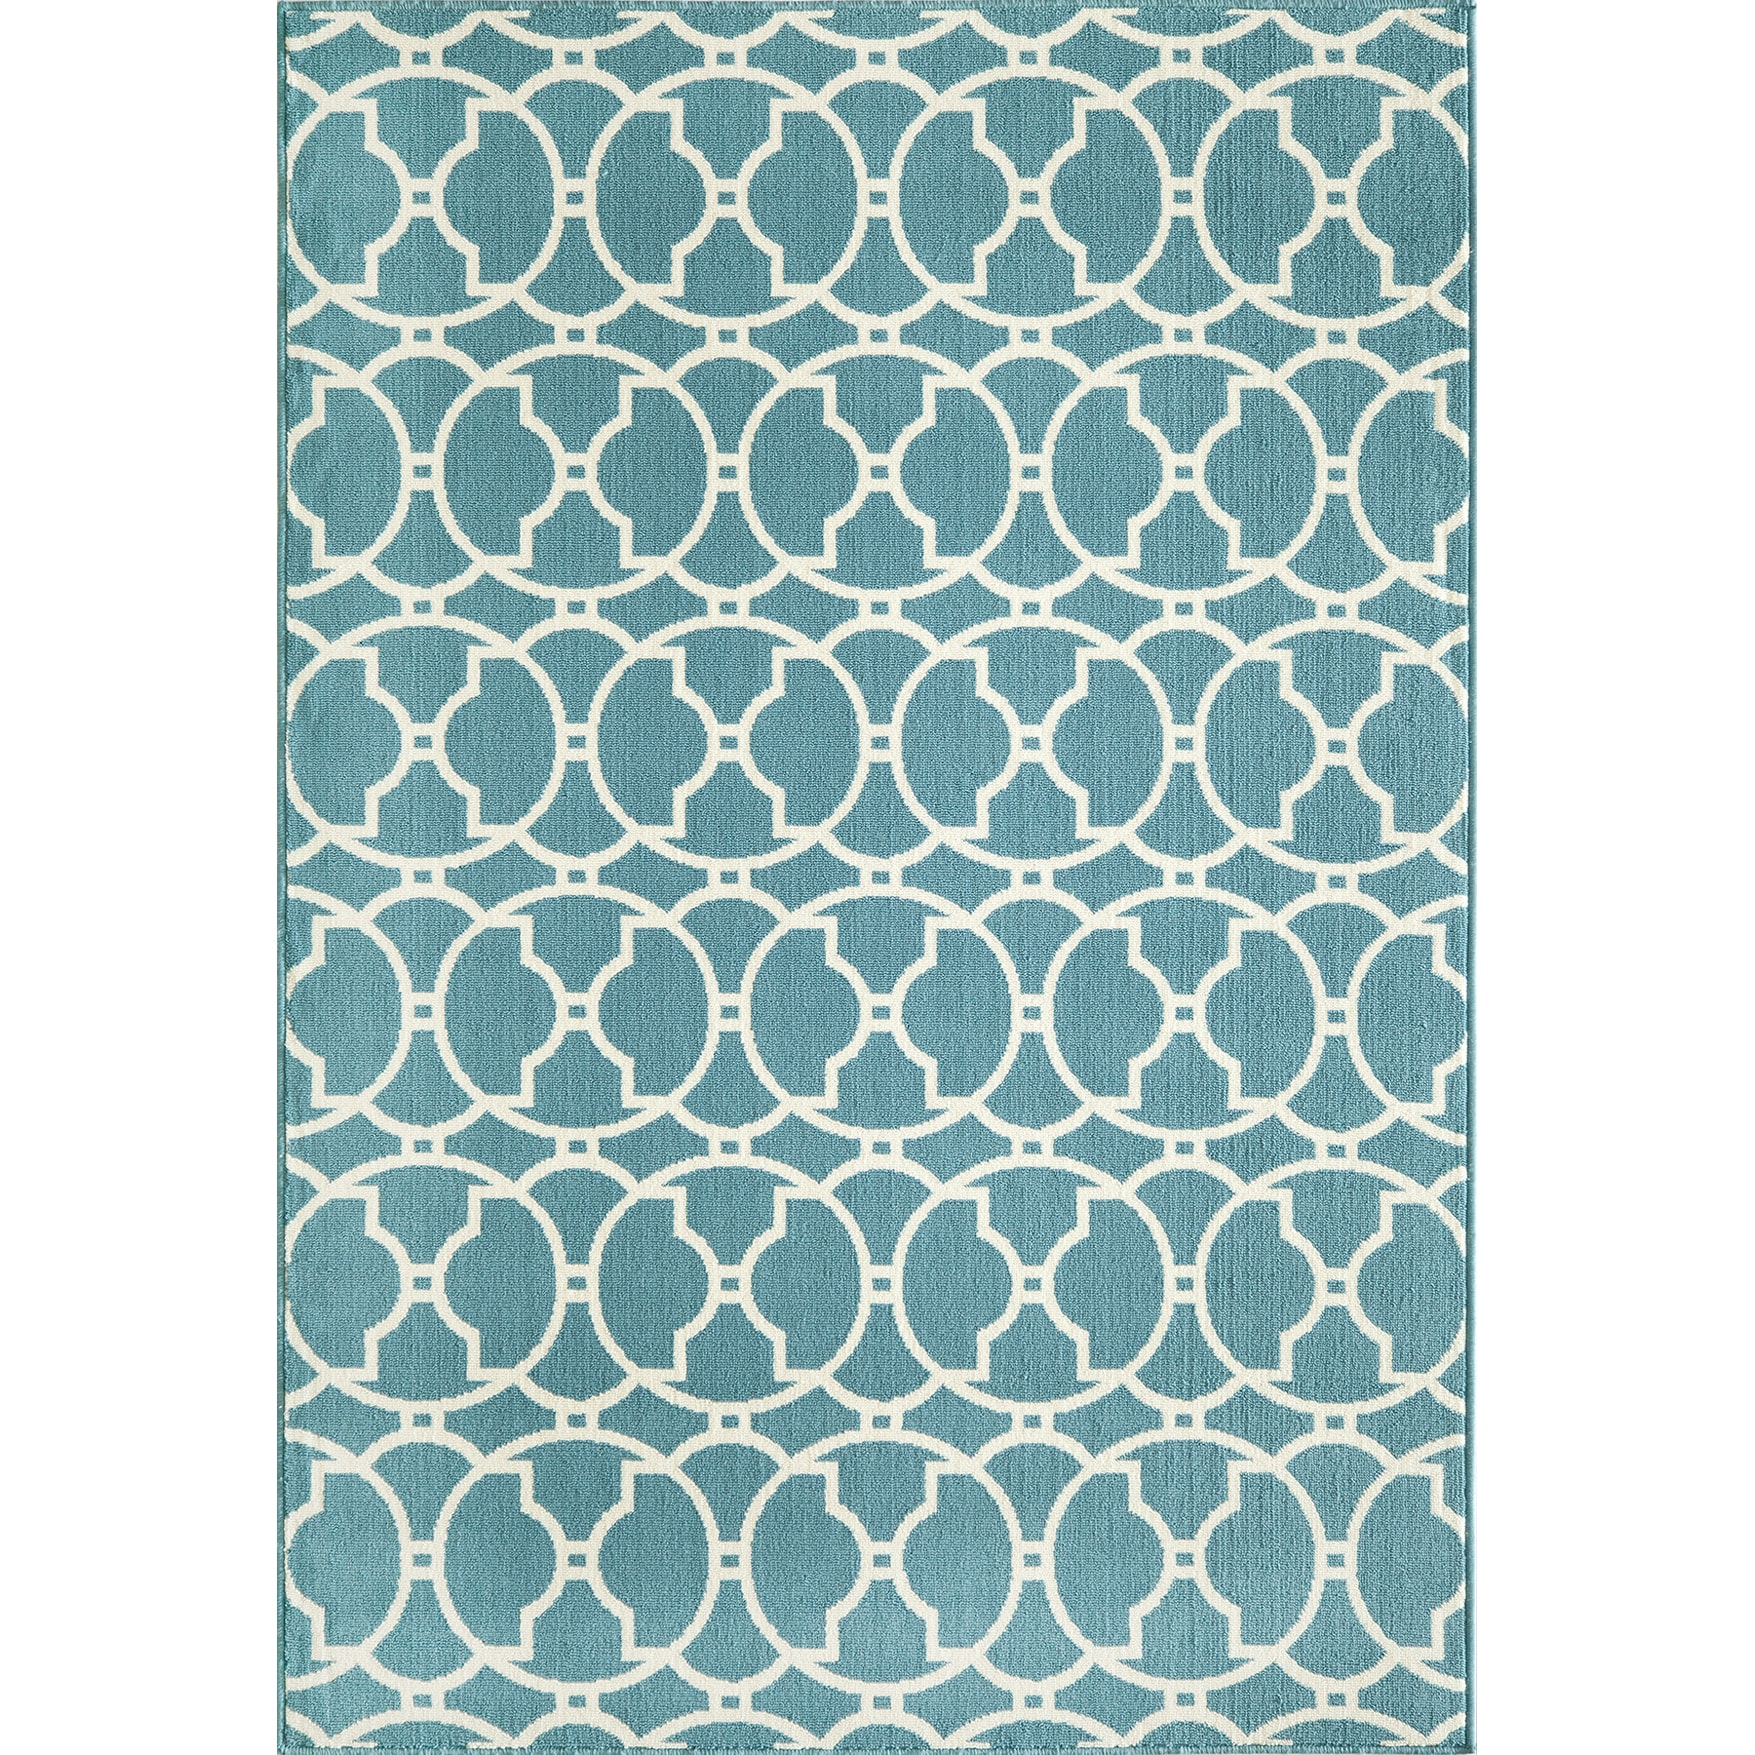 Moroccan Tile Blue Indoor Outdoor Rug 2 3 x 4 6